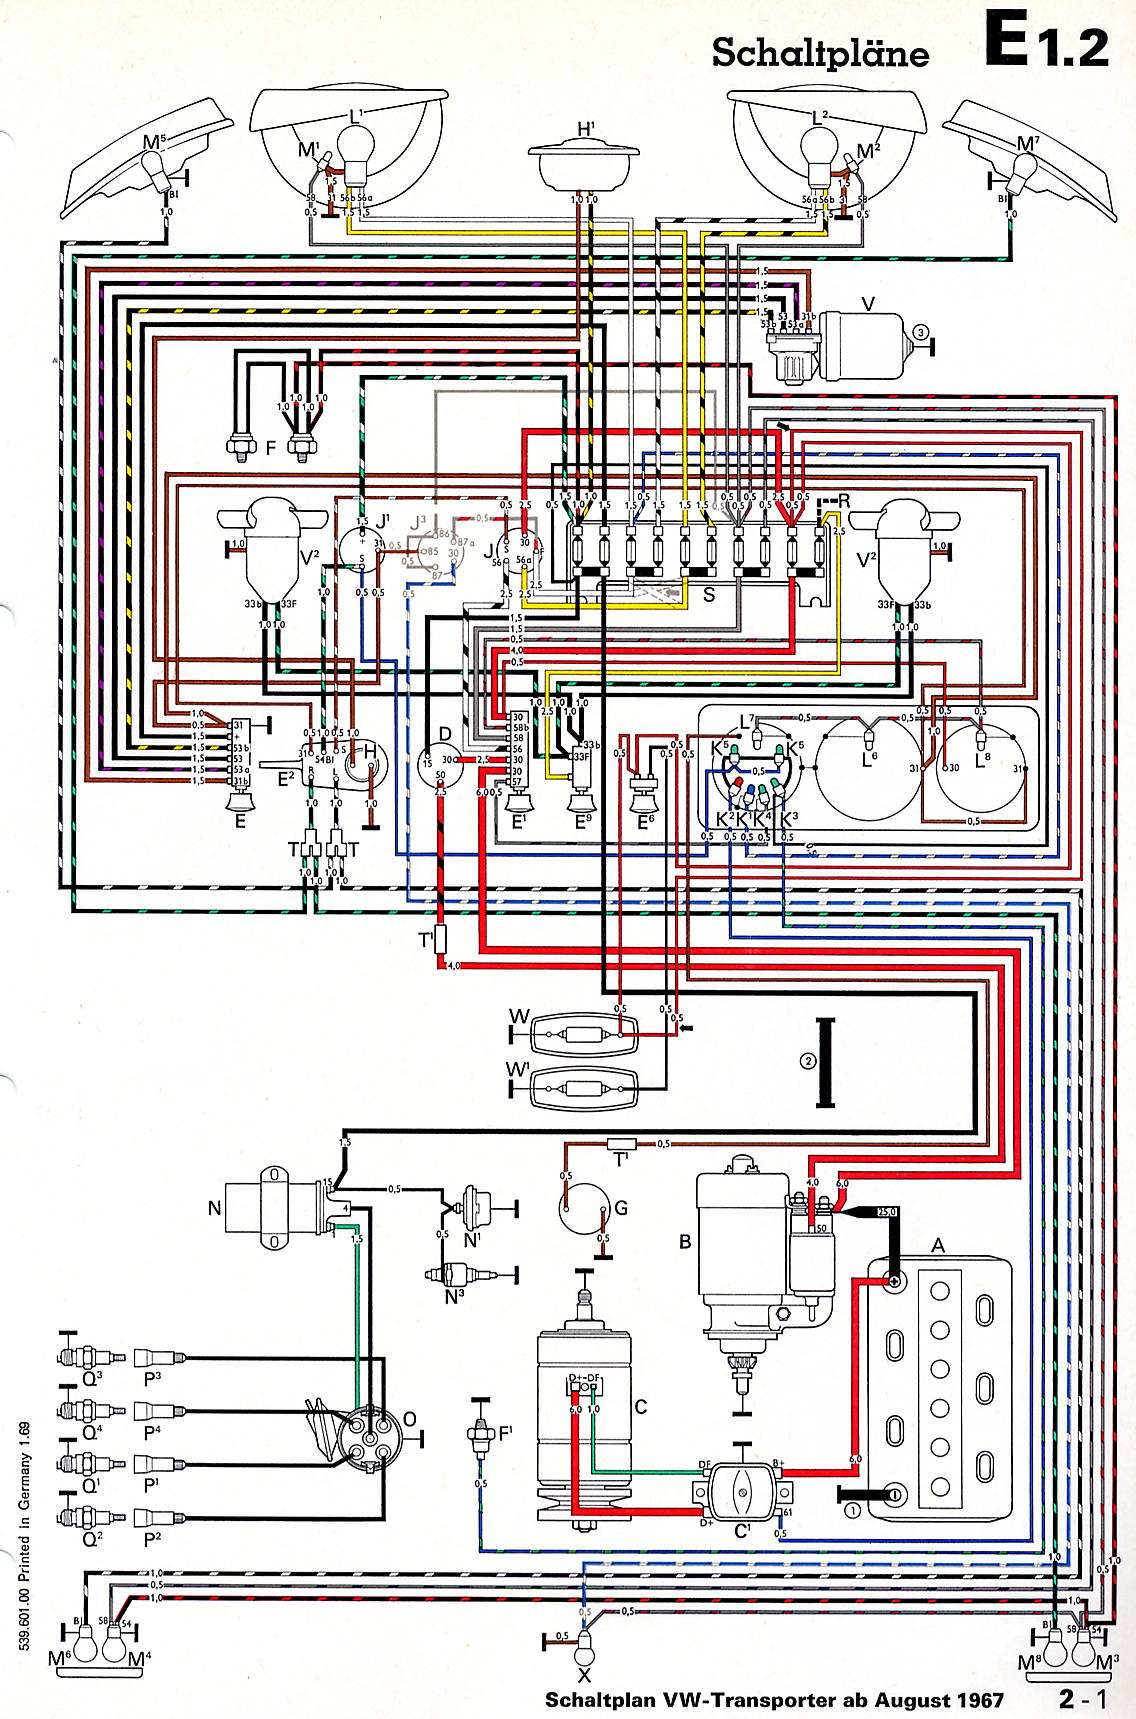 Transporter_from_August_1967 vw dune buggy wiring diagram vw air cooled engine diagram \u2022 free 2010 Bad Boy Buggy Classic 48 Volt Battery Wiring Diagram at arjmand.co